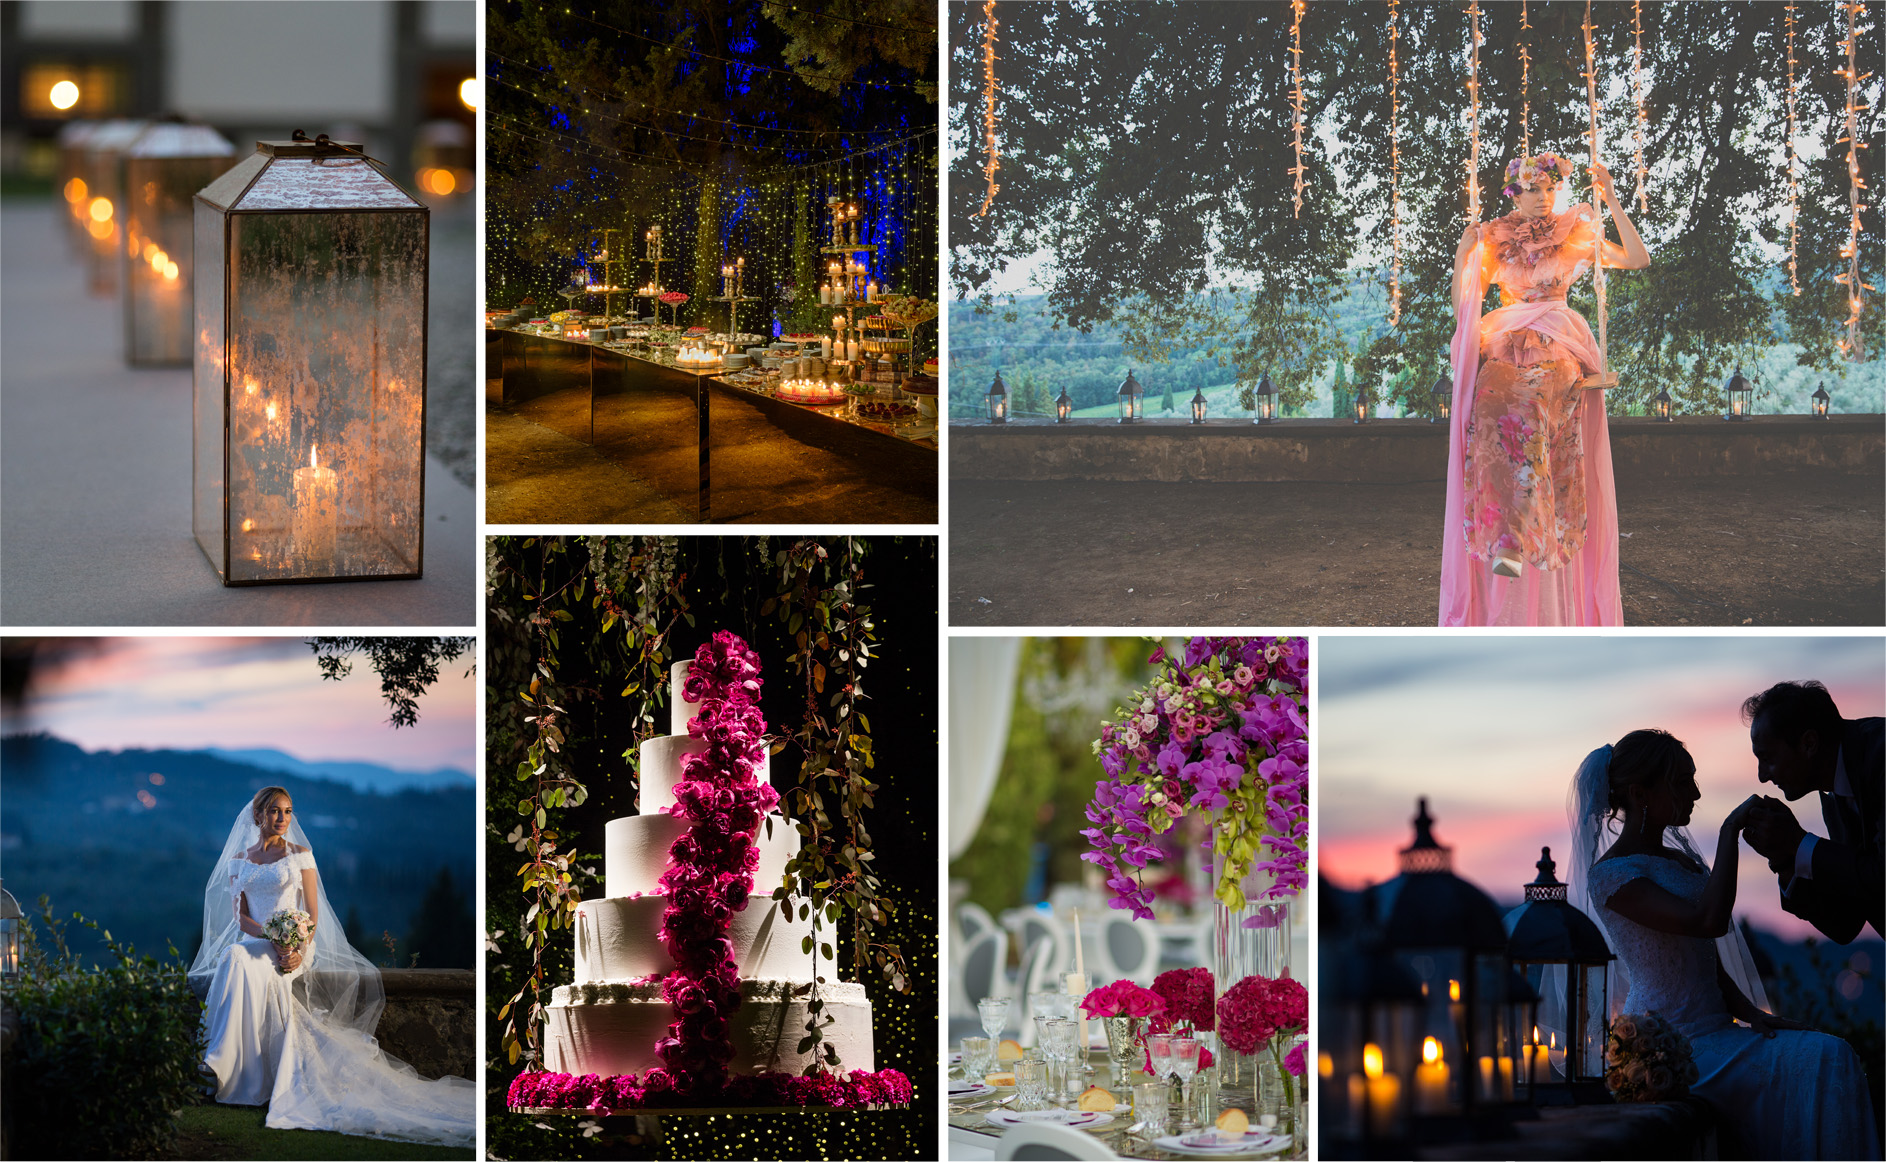 savvyeventstudio.com | Savvy Event Studio | Destination Wedding Planner for Luxury Weddings in Miami Florida and Italy